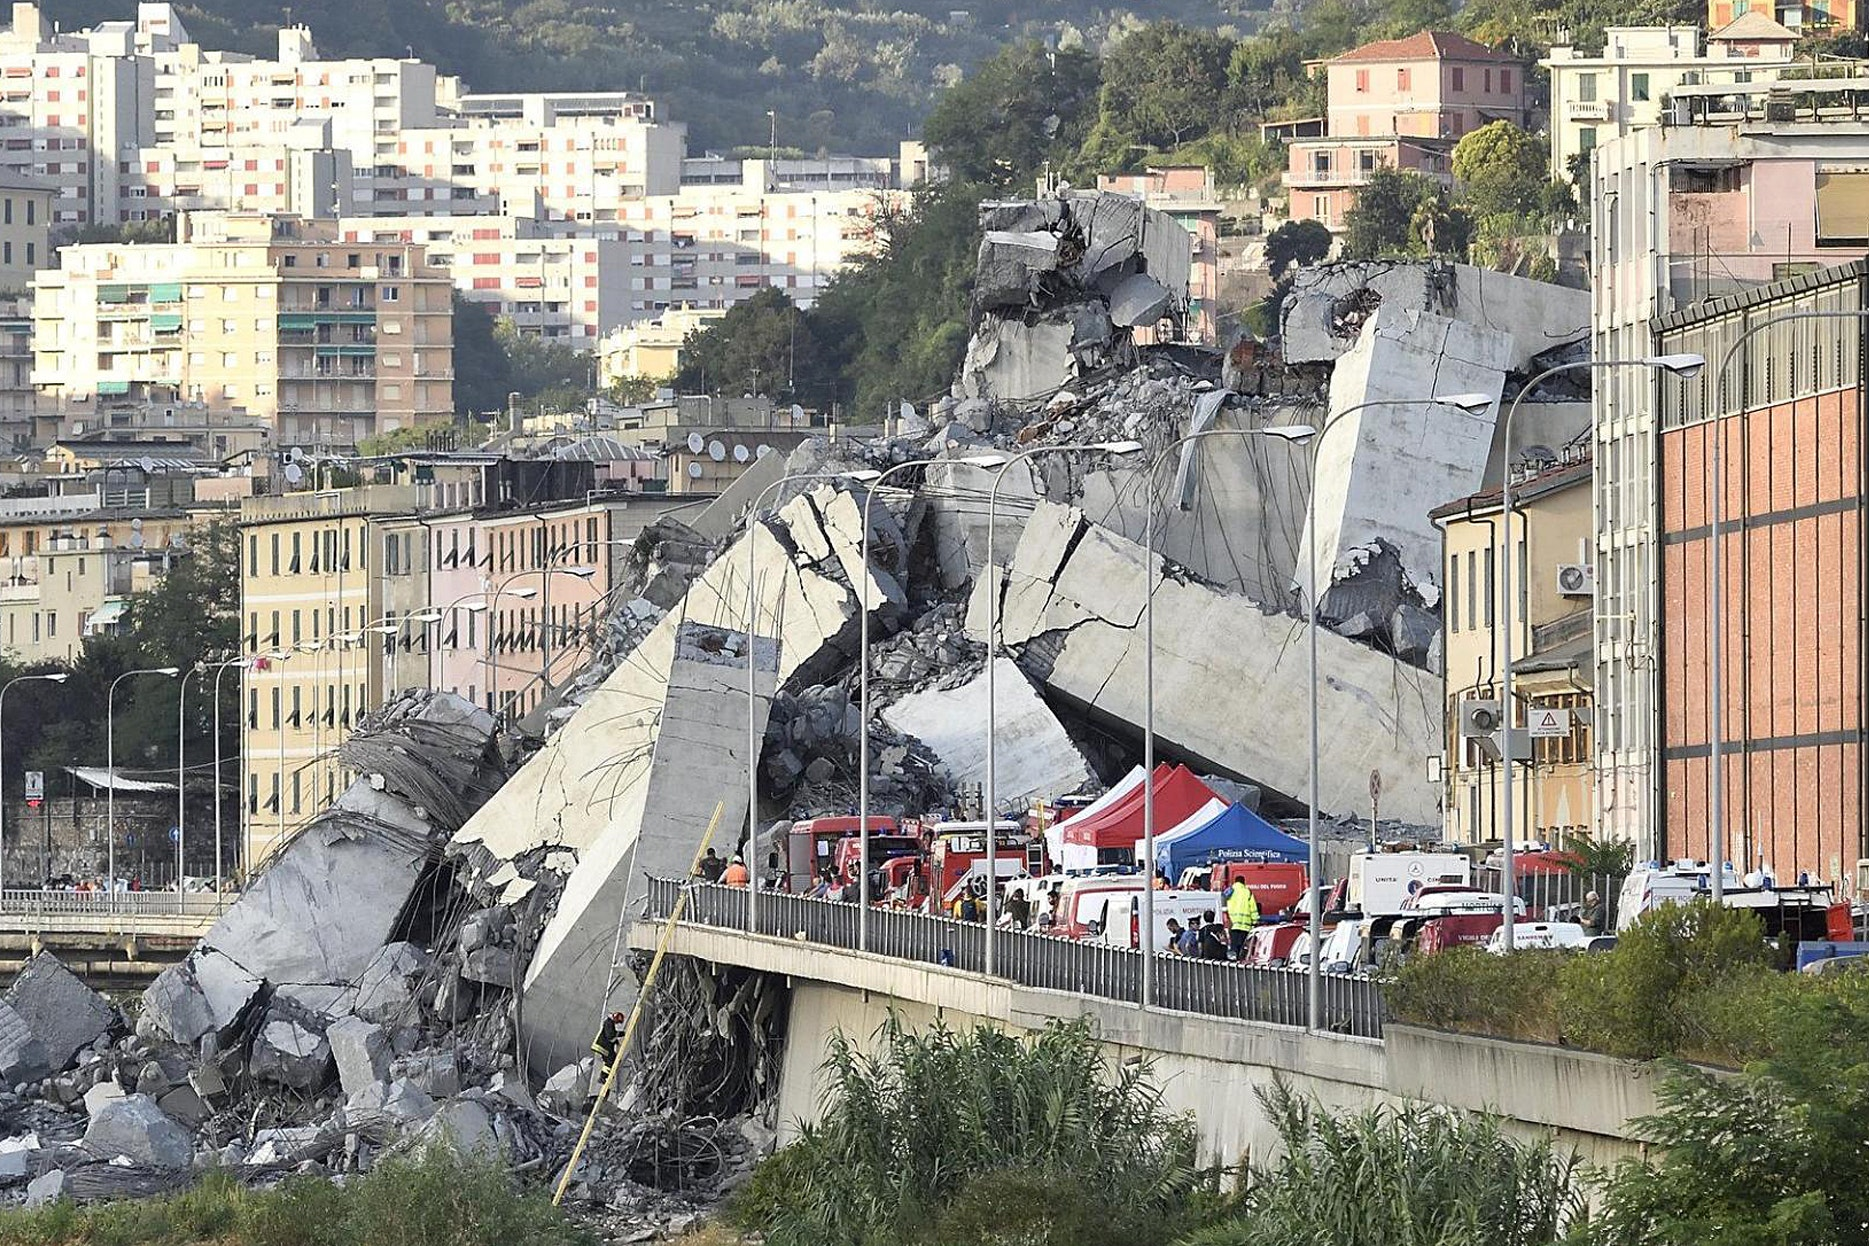 Italian motorway operators' shares plummet after deadly bridge collapse